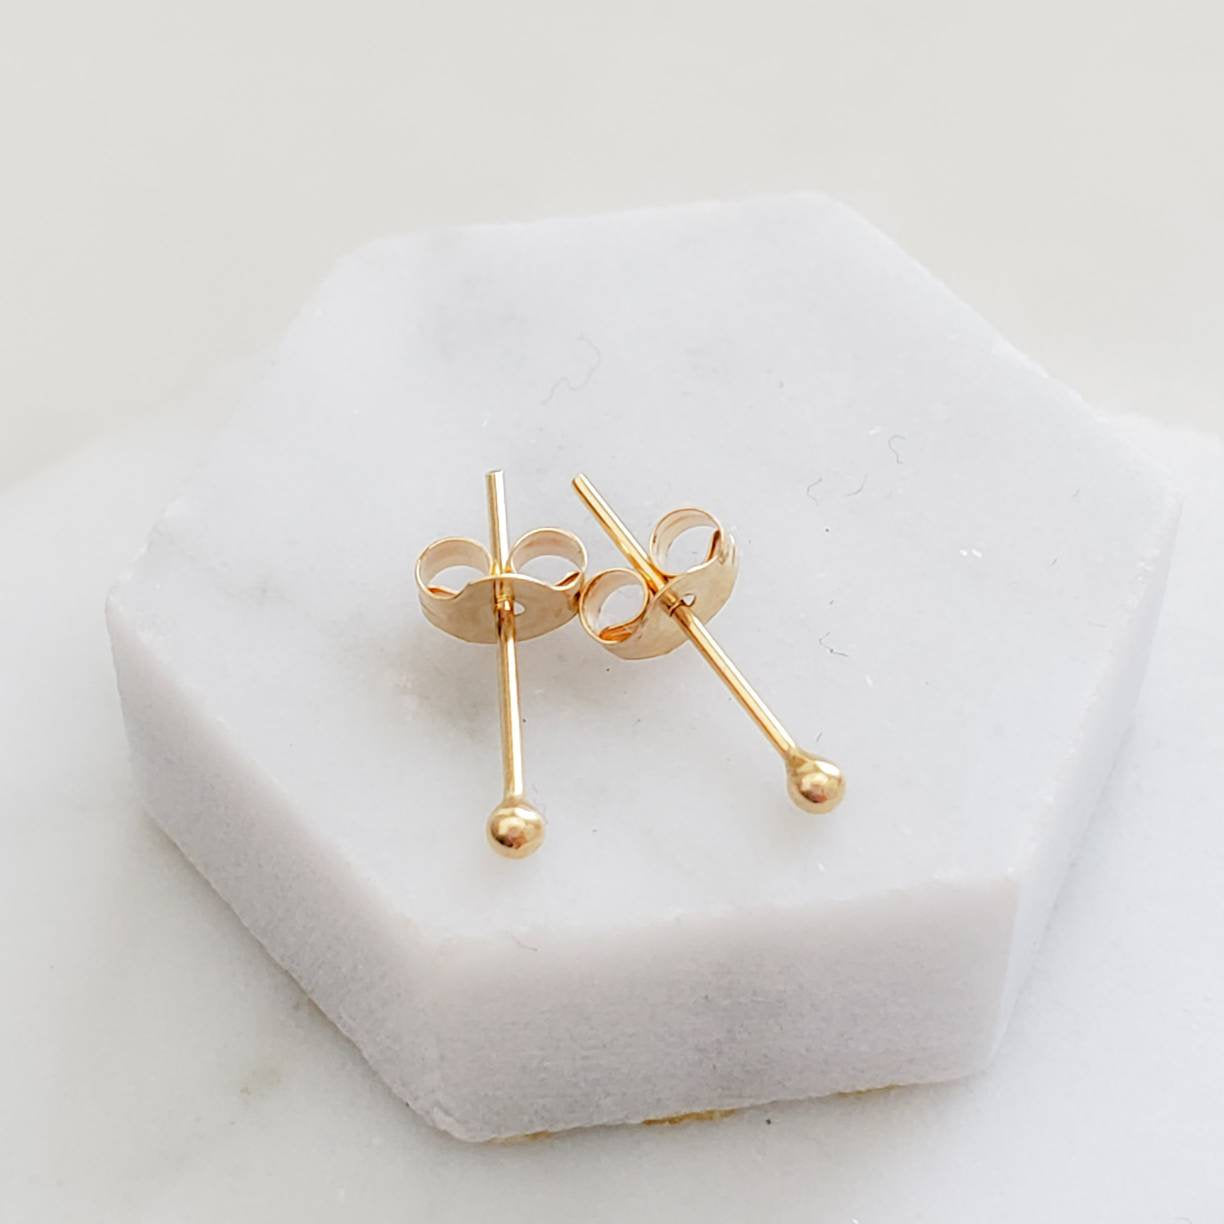 Super Tiny Ball Studs in 10K Gold